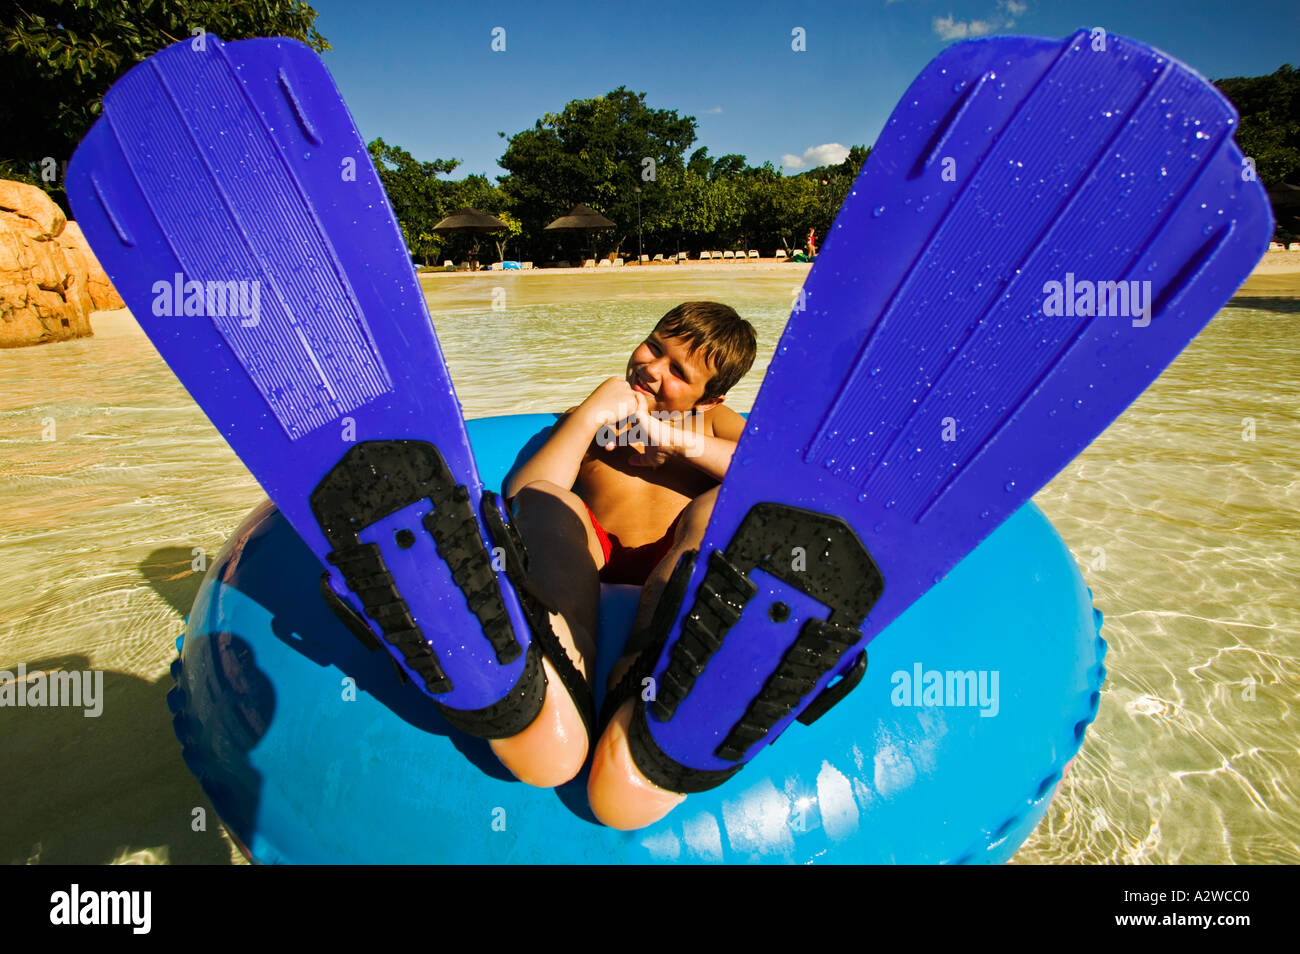 People 8 year old child in water tube with flippers Model released Sun City South Africa - Stock Image